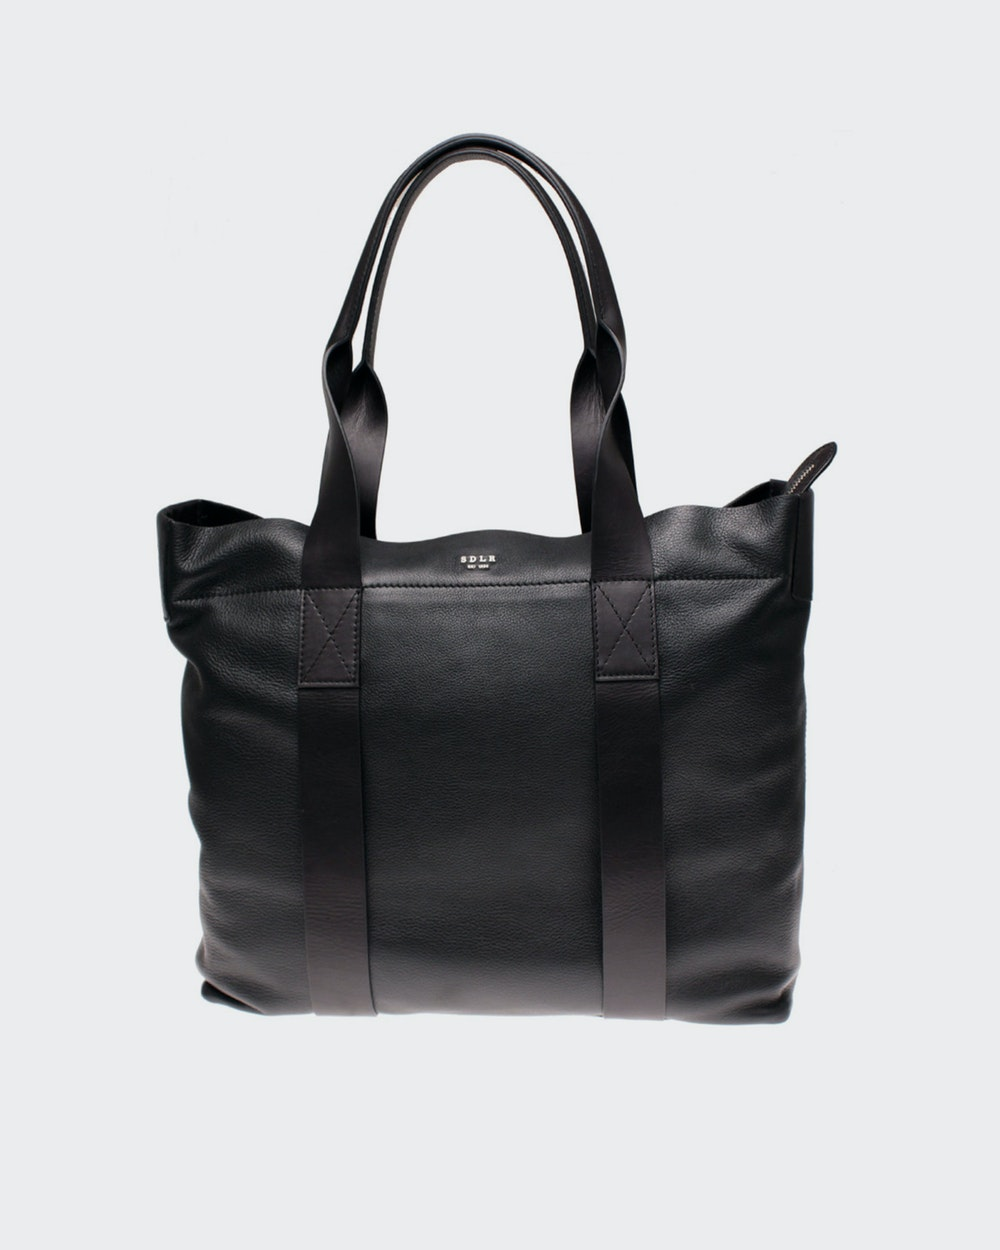 Liv tote bag Black Saddler